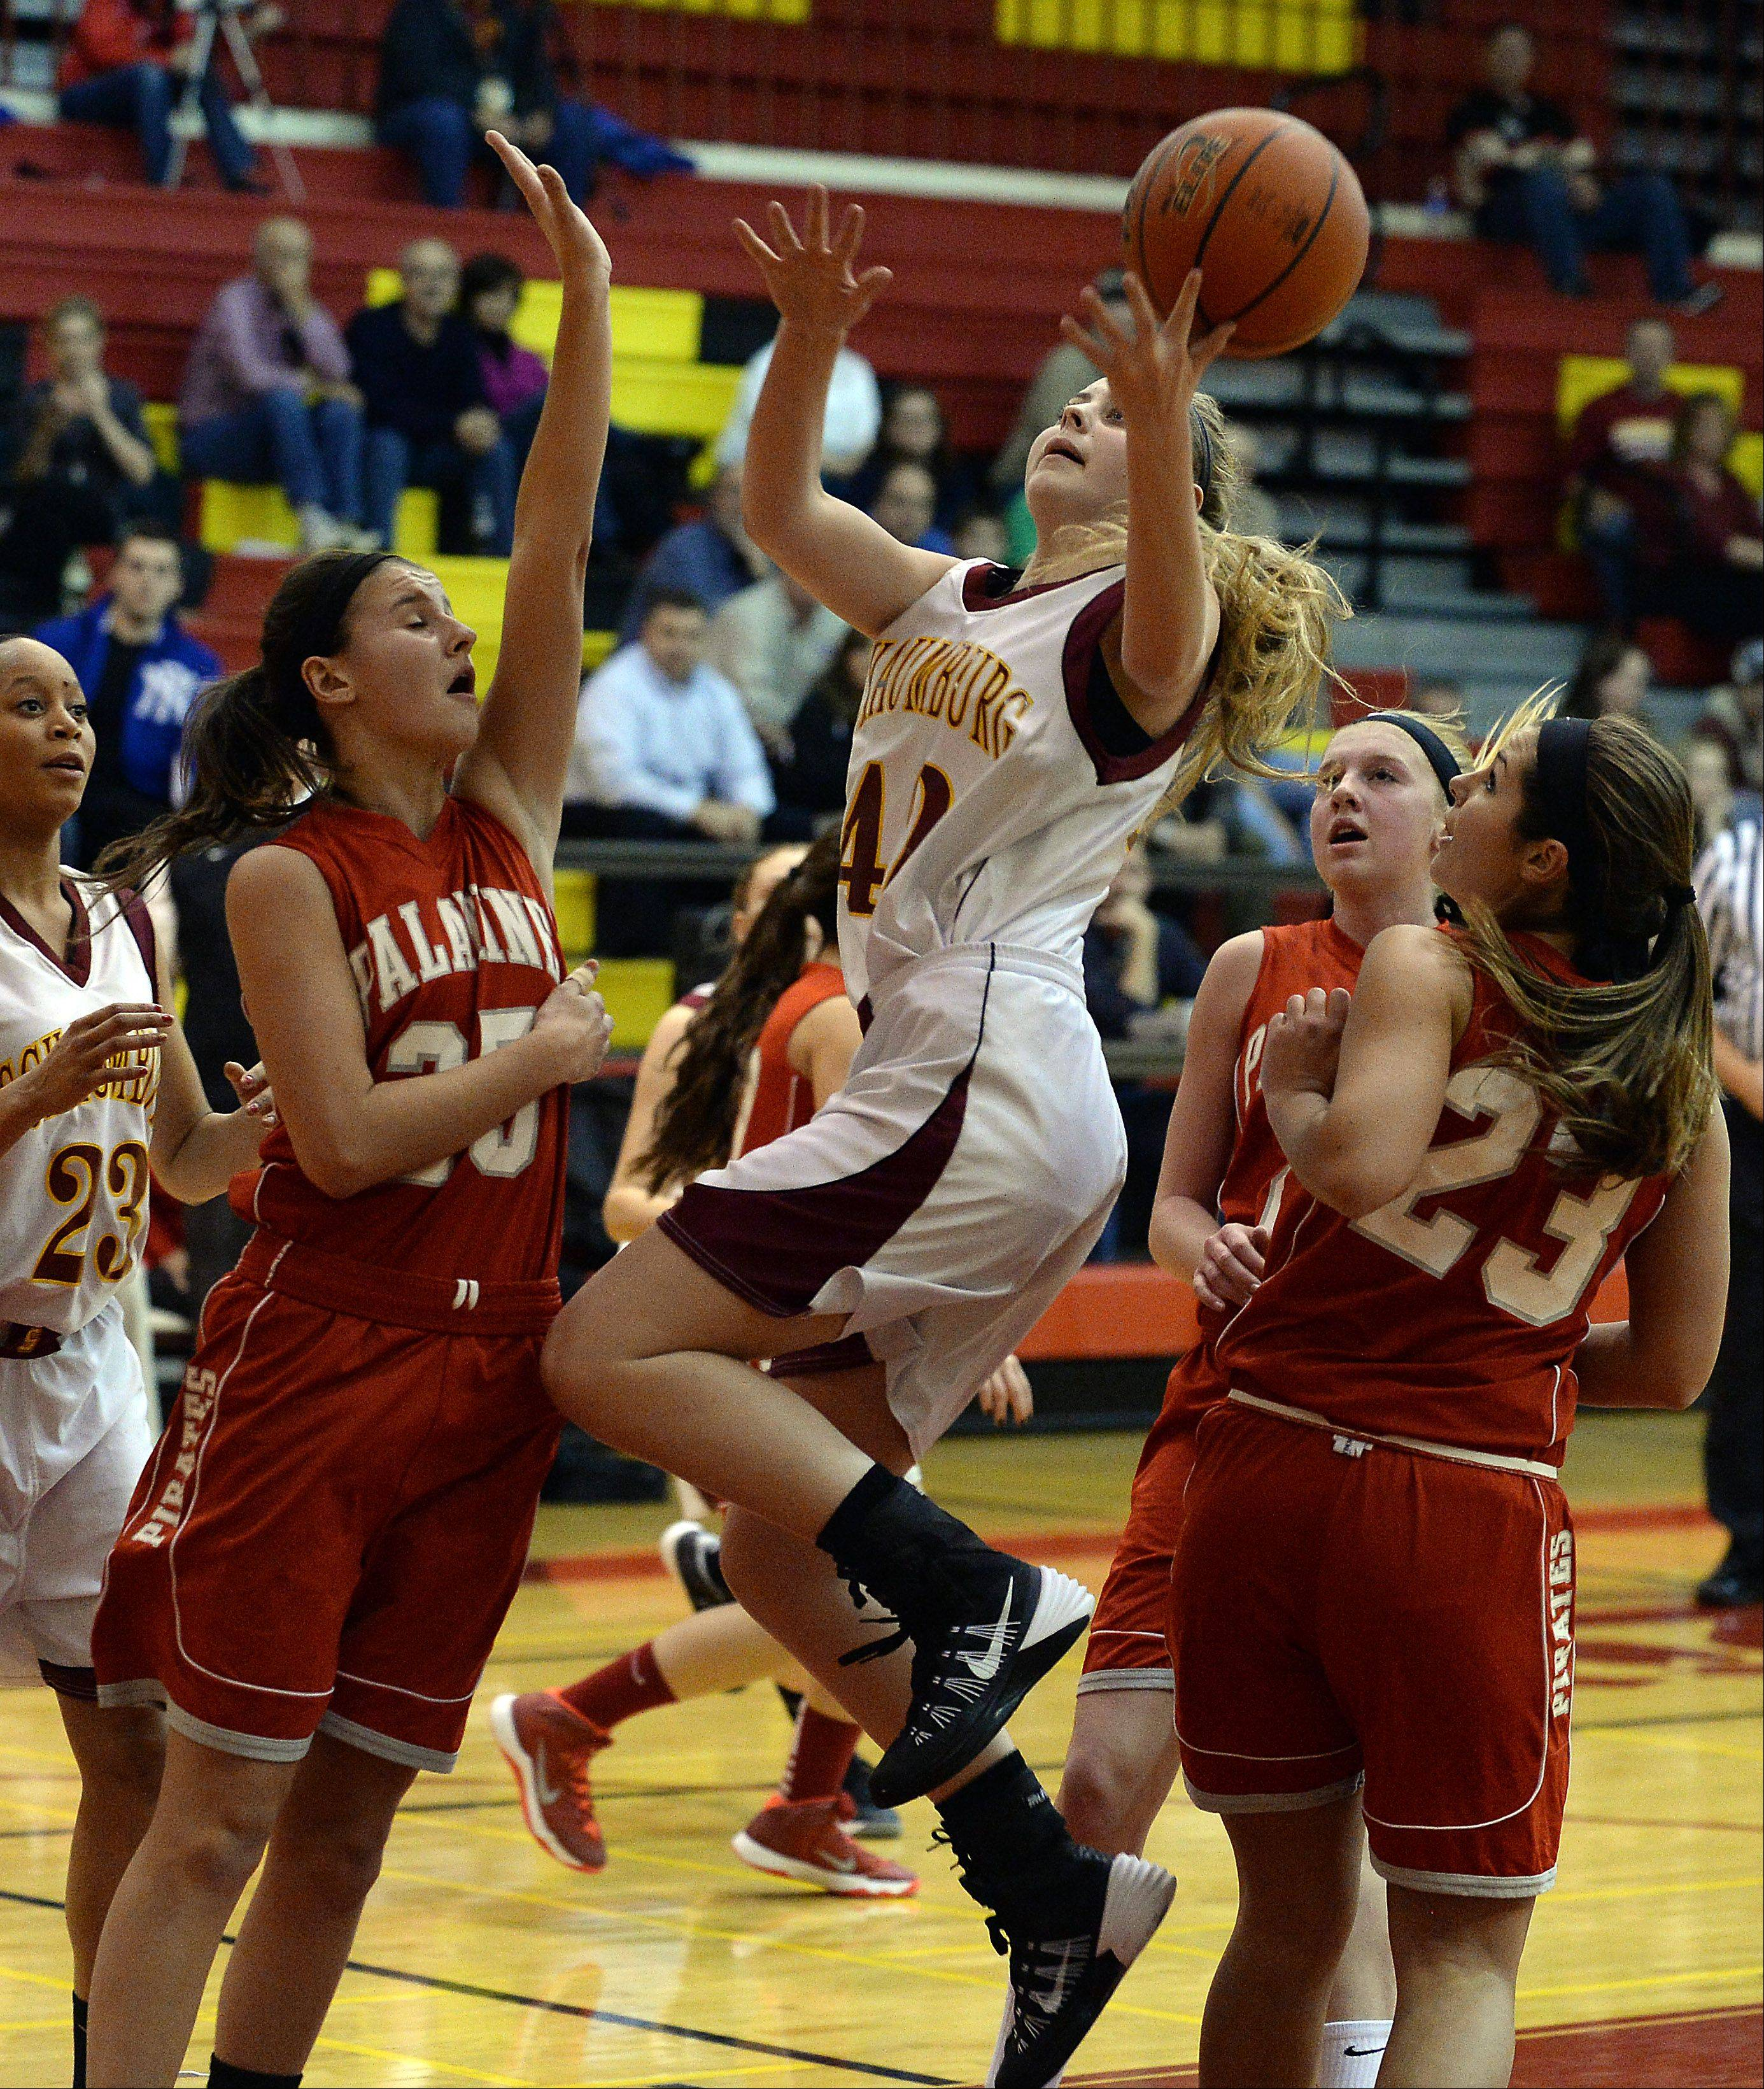 Schaumburg's Mallory Gerber delivers as Palatine's Erin Mayer and Morgan Gallagher block in the first quarter.